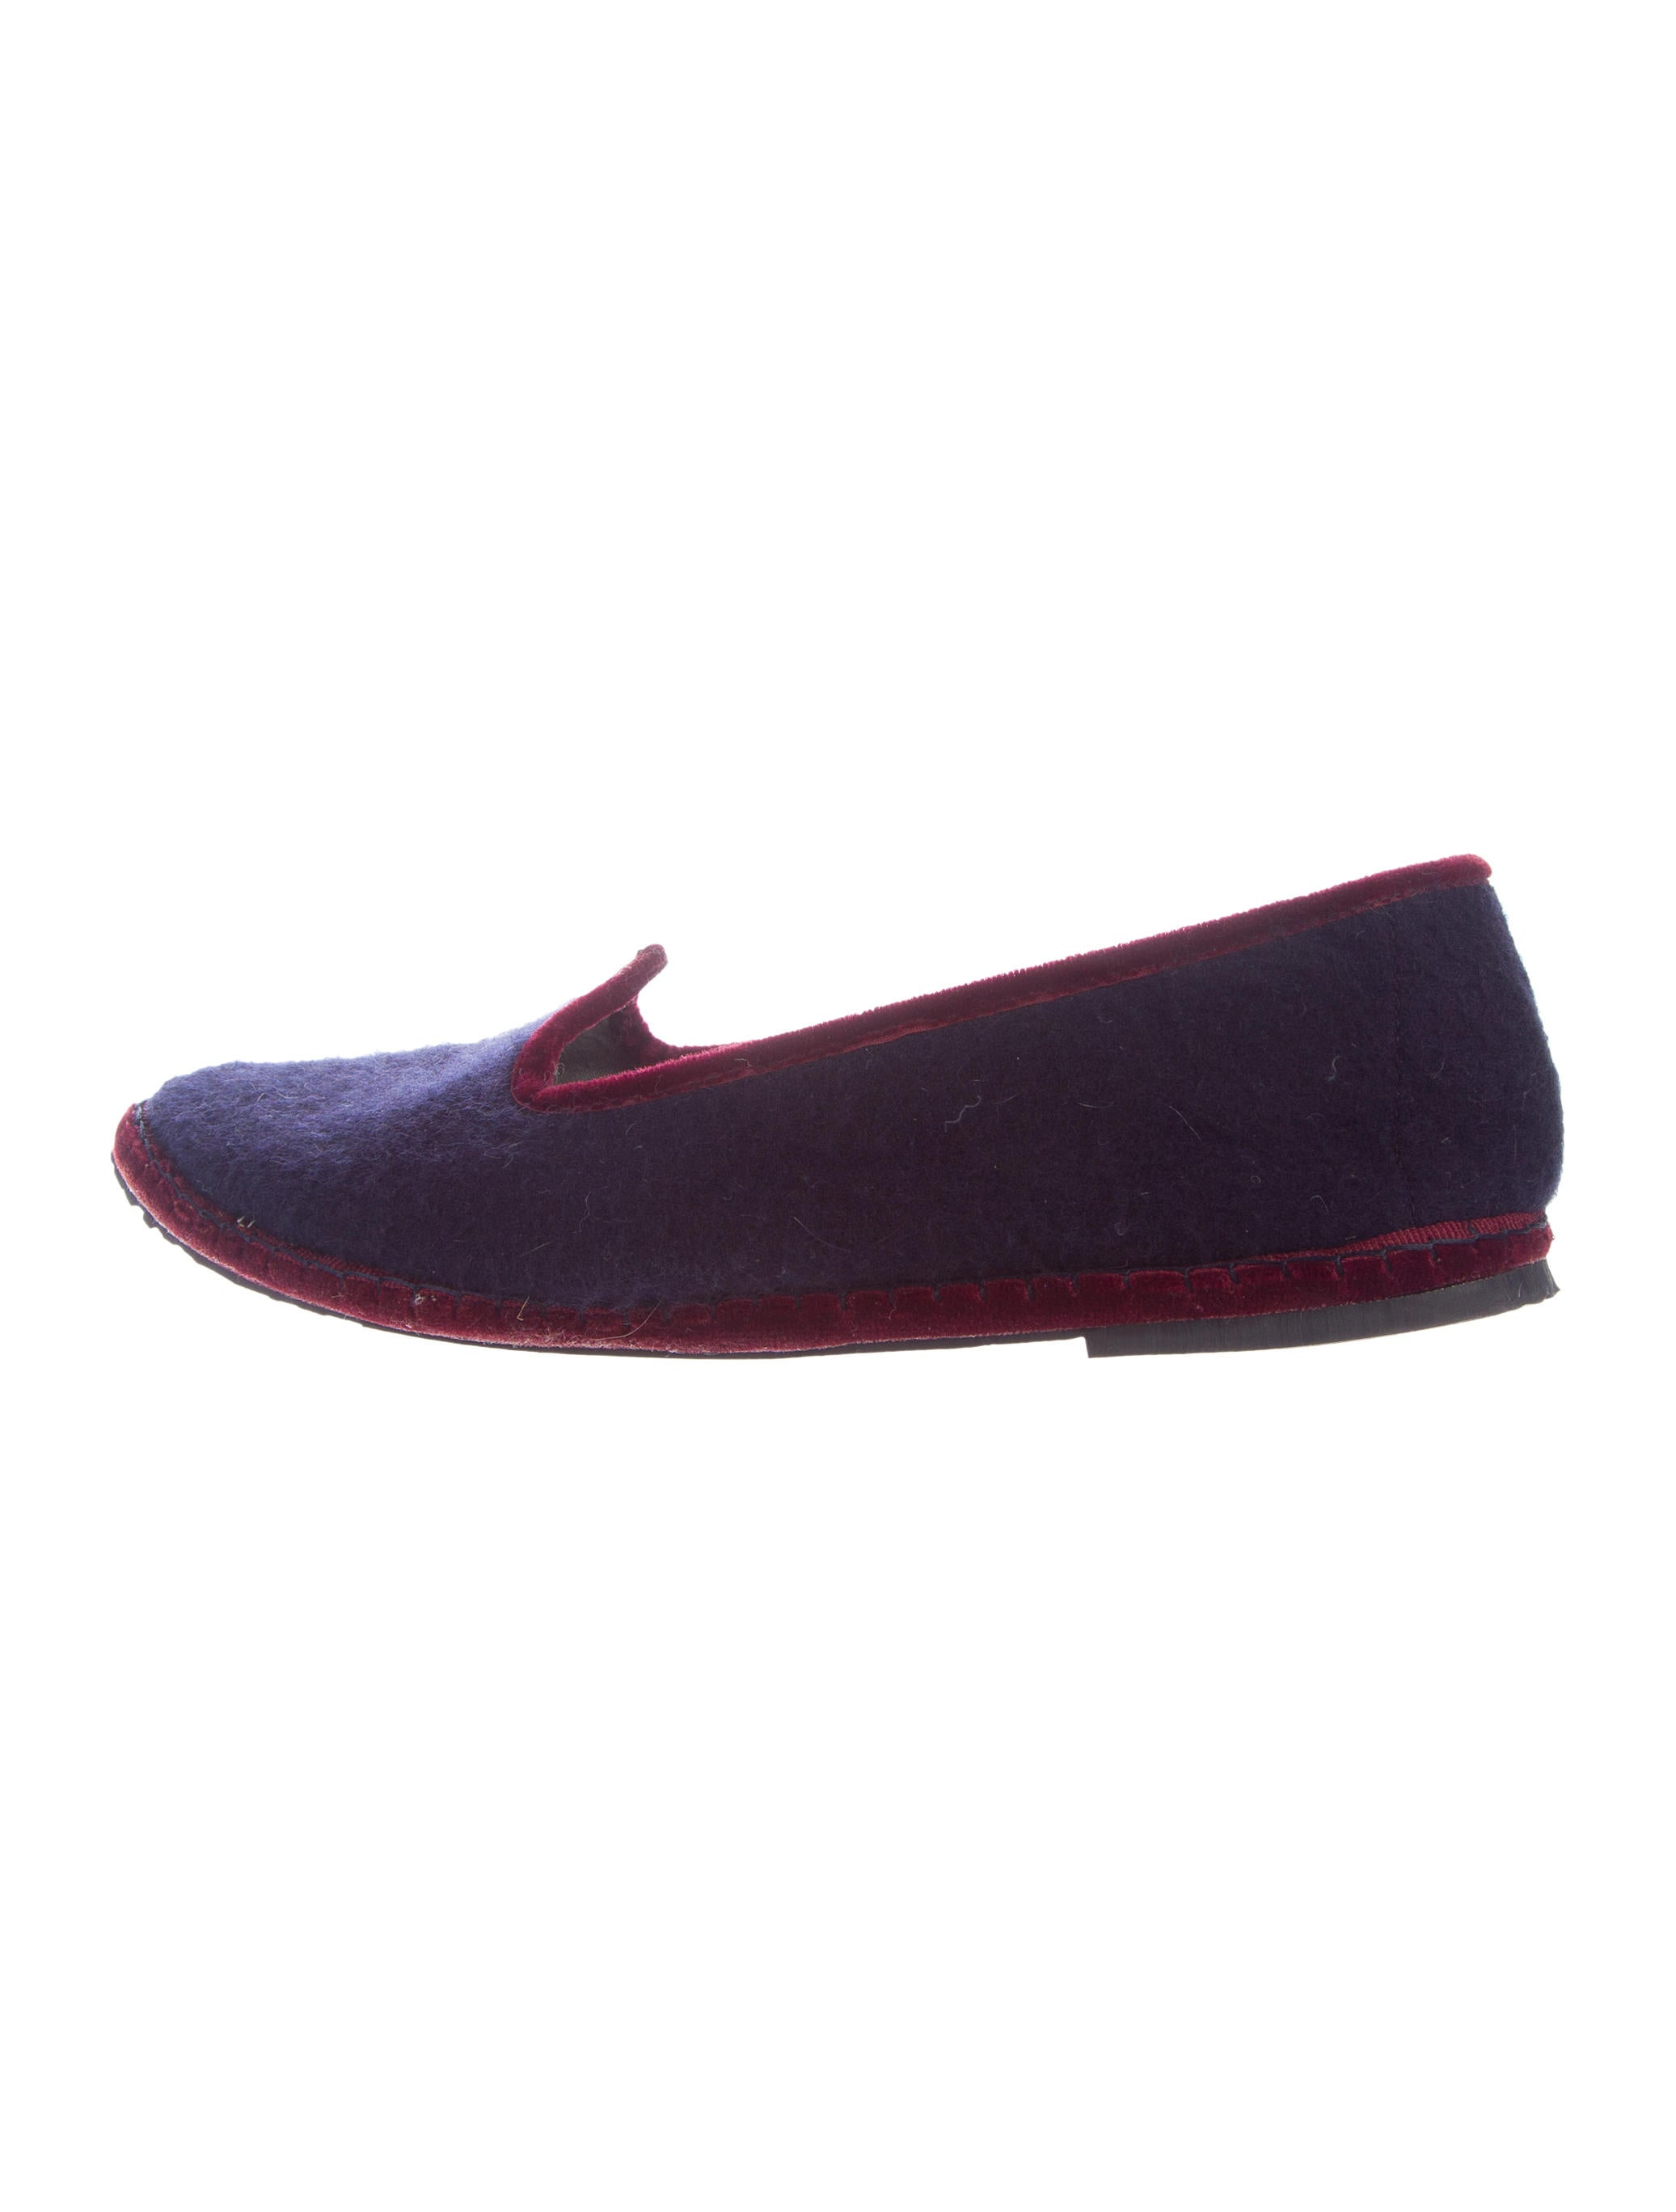 612094a22a8 Loro Piana Cashmere Pointed-Toe Loafers - Shoes - LOR38156